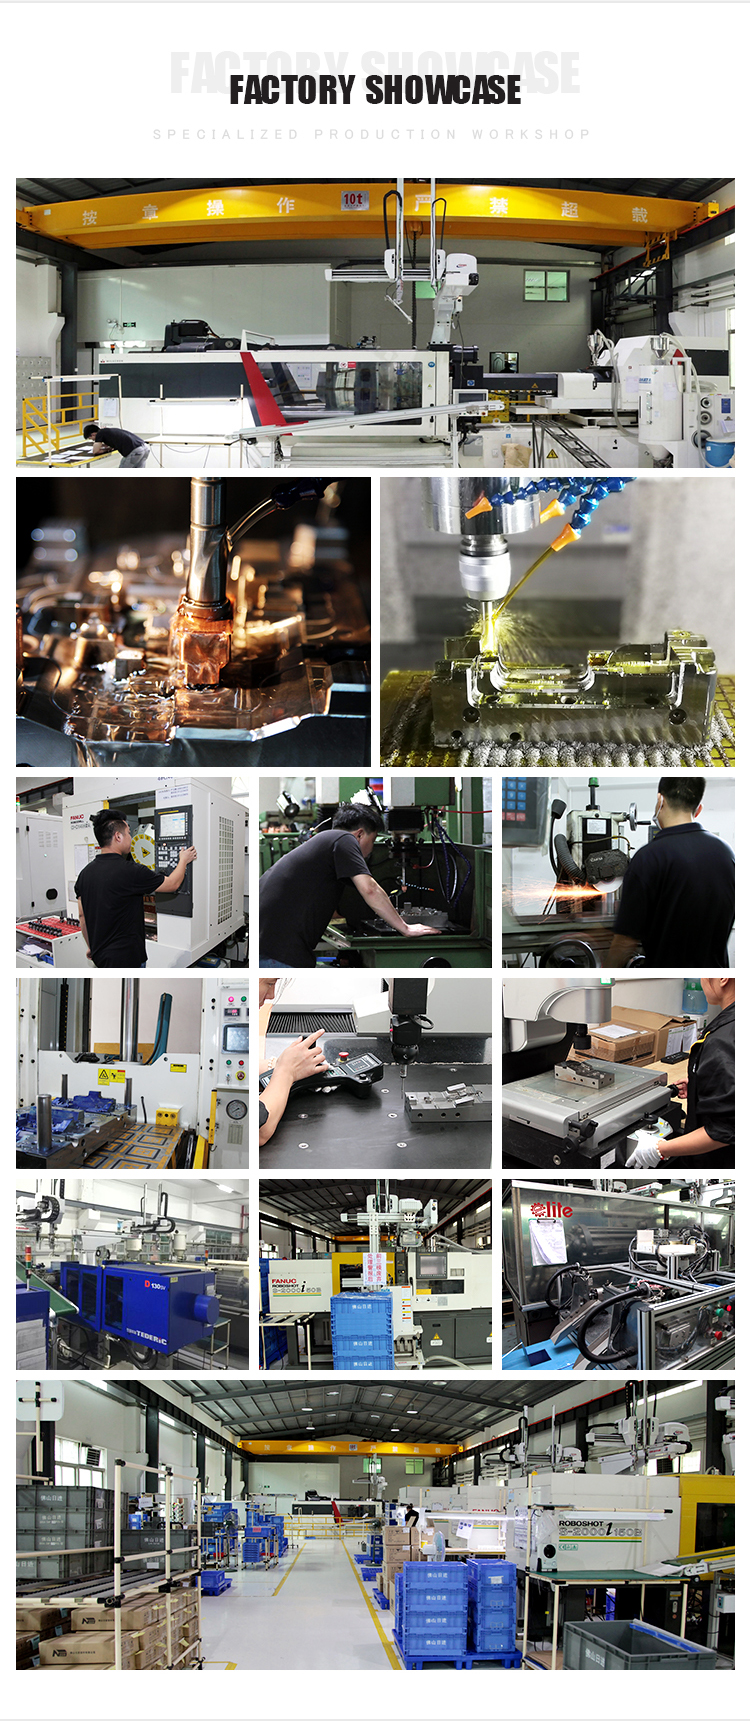 Customized plastic shell Injection molding factory in Guangzhou